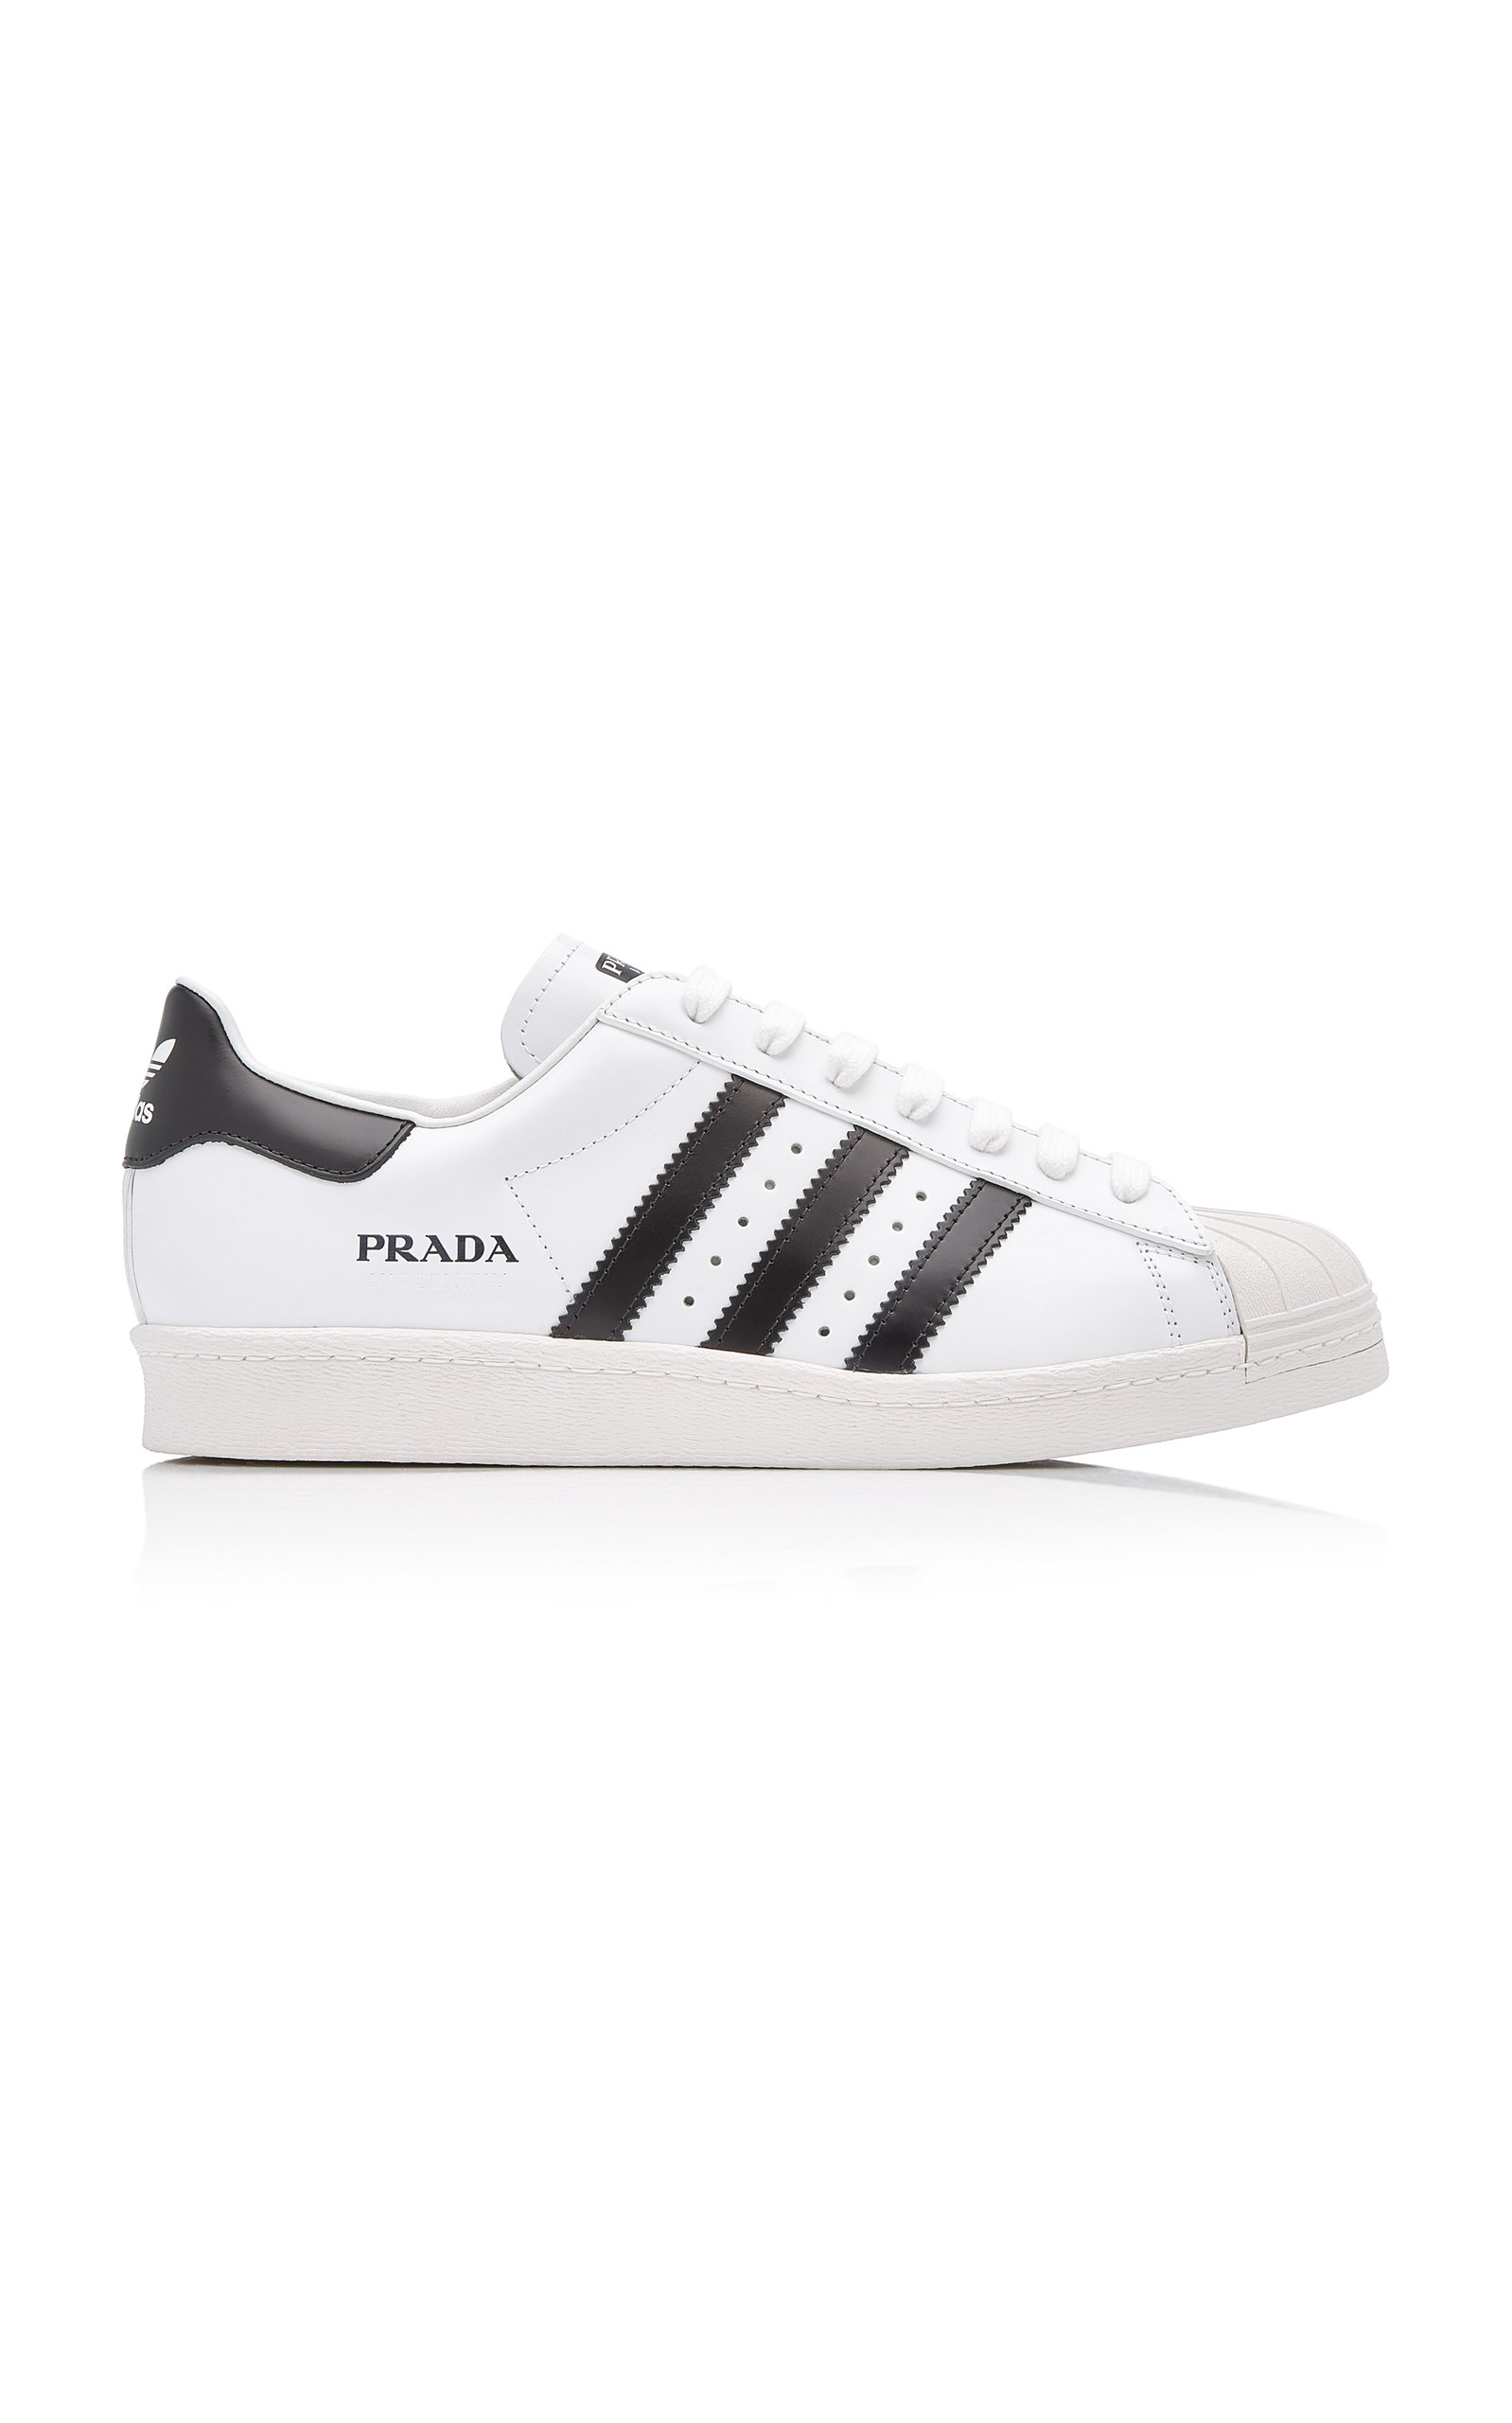 Adidas X Prada Leathers SUPERSTAR LEATHER SNEAKERS